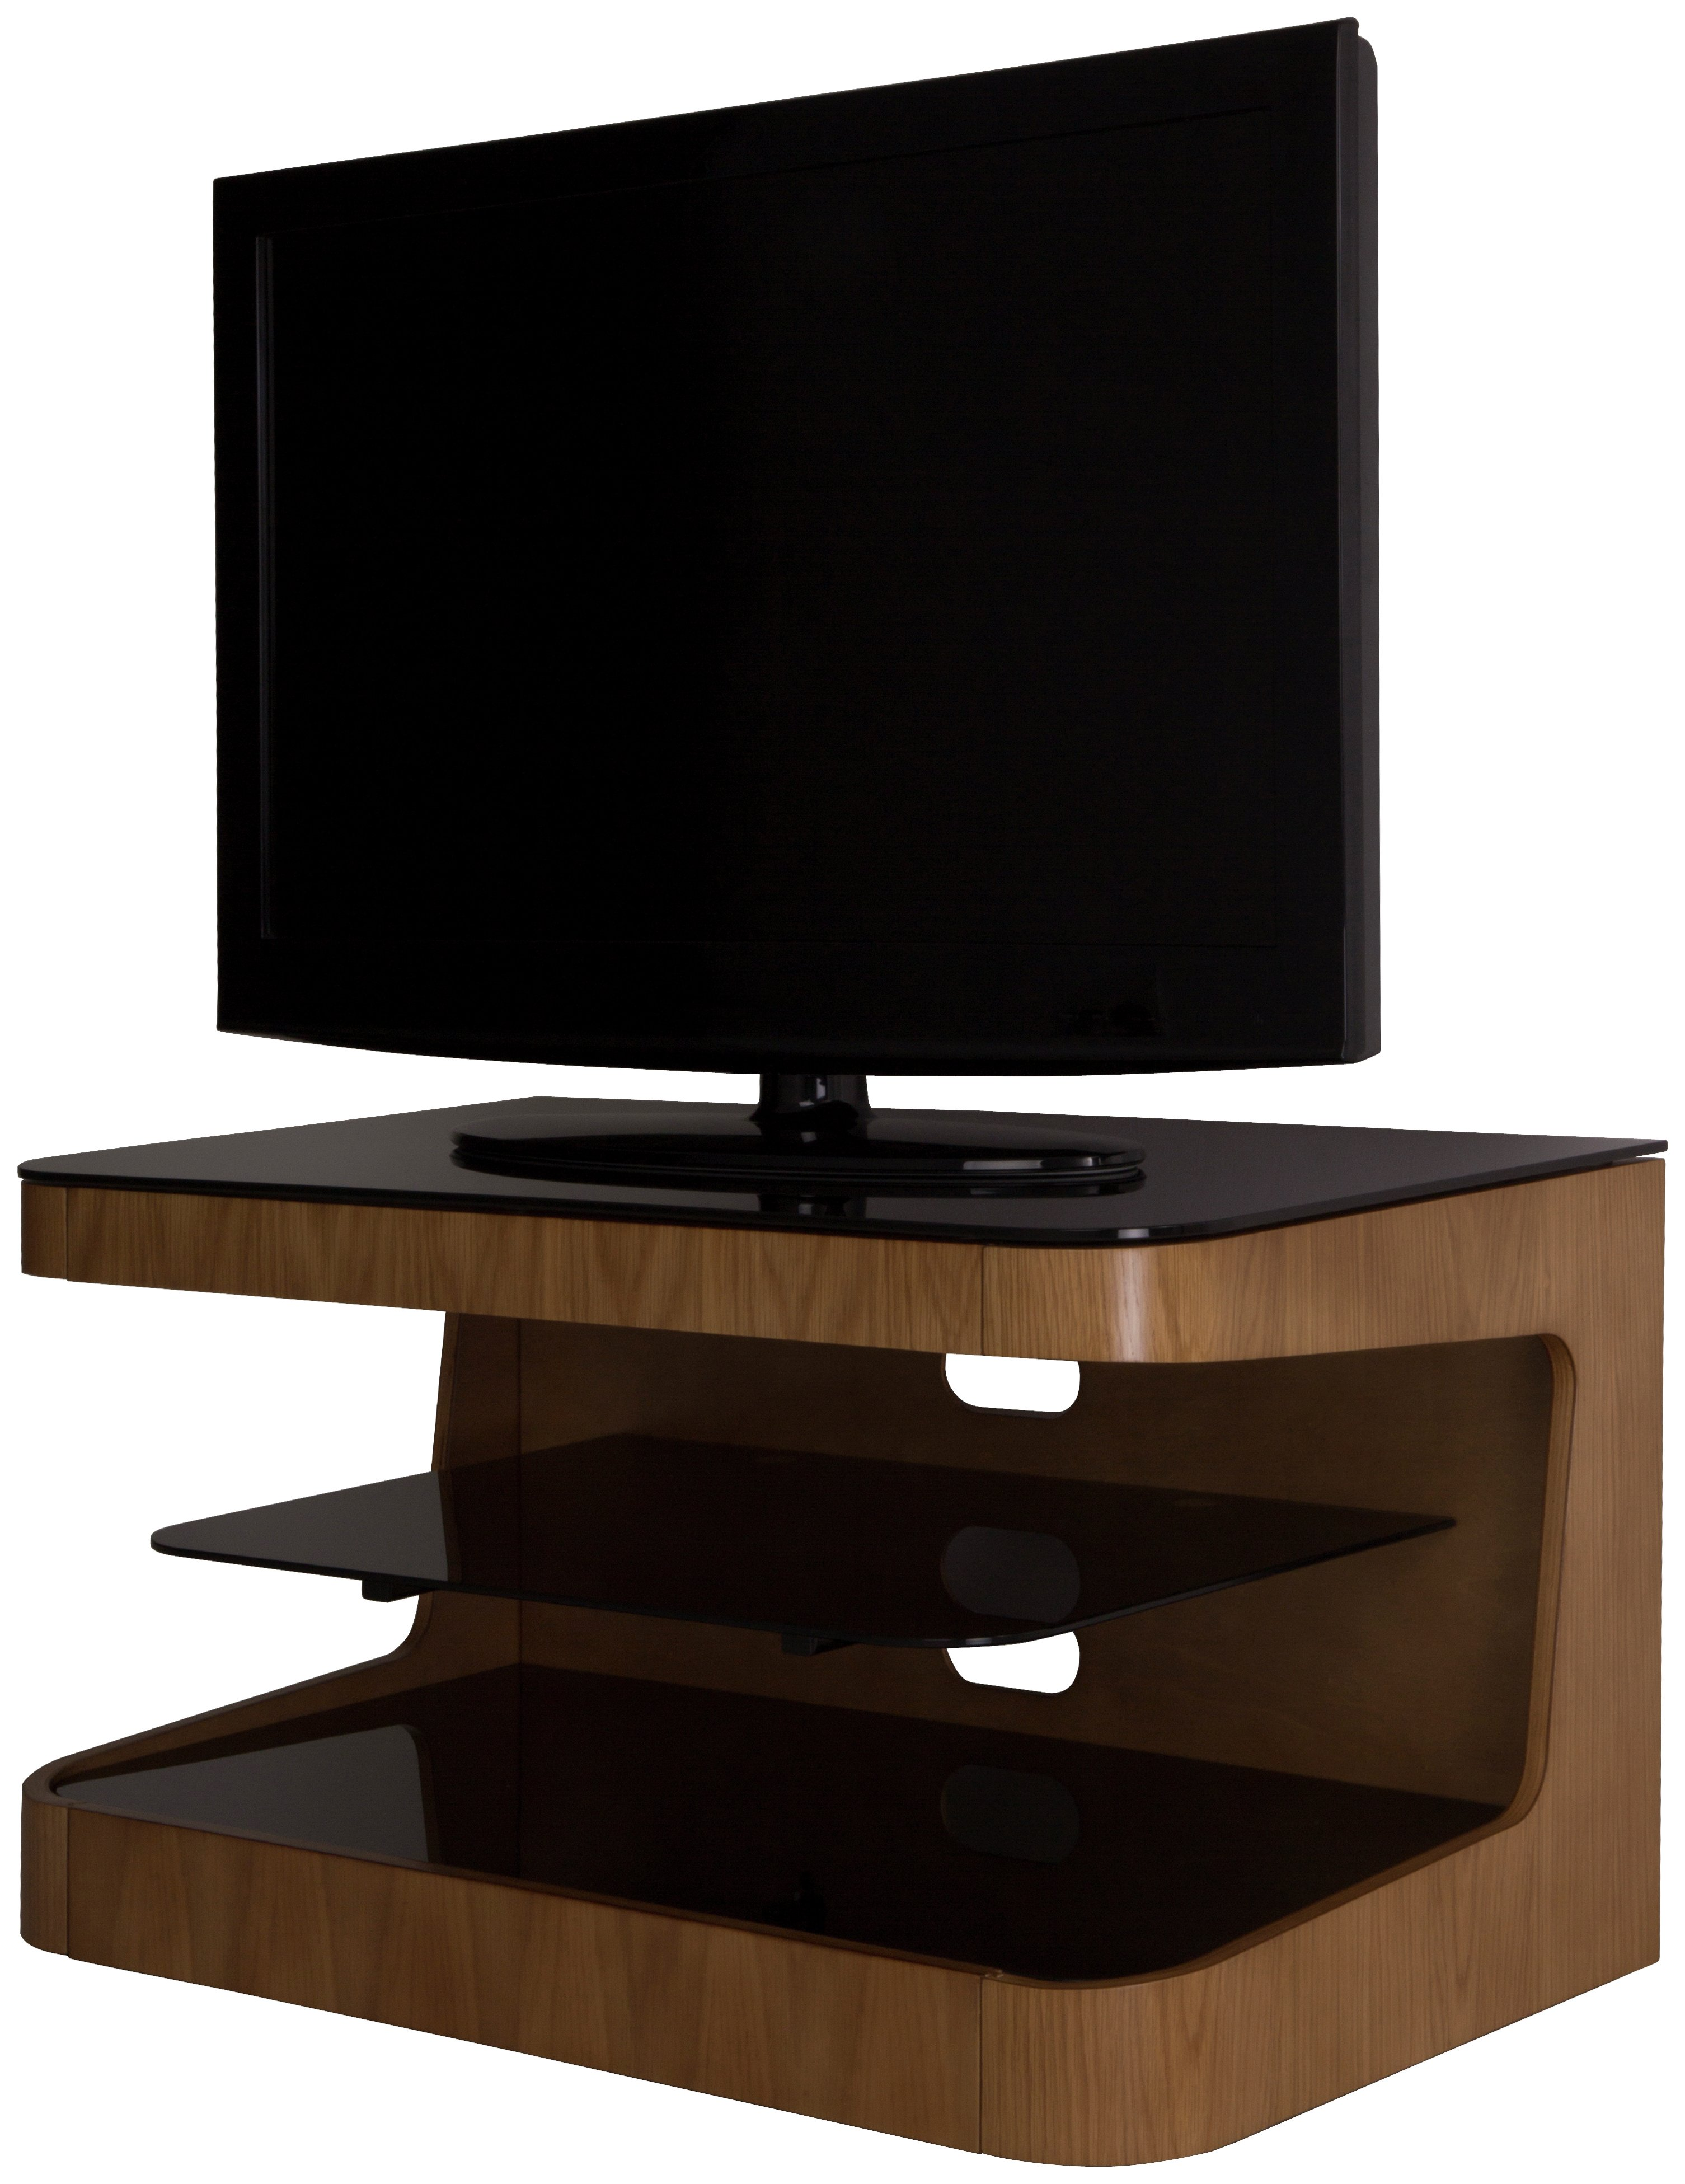 AVF Up to 40 Inch Wood TV Stand - Oak Results for inch tv